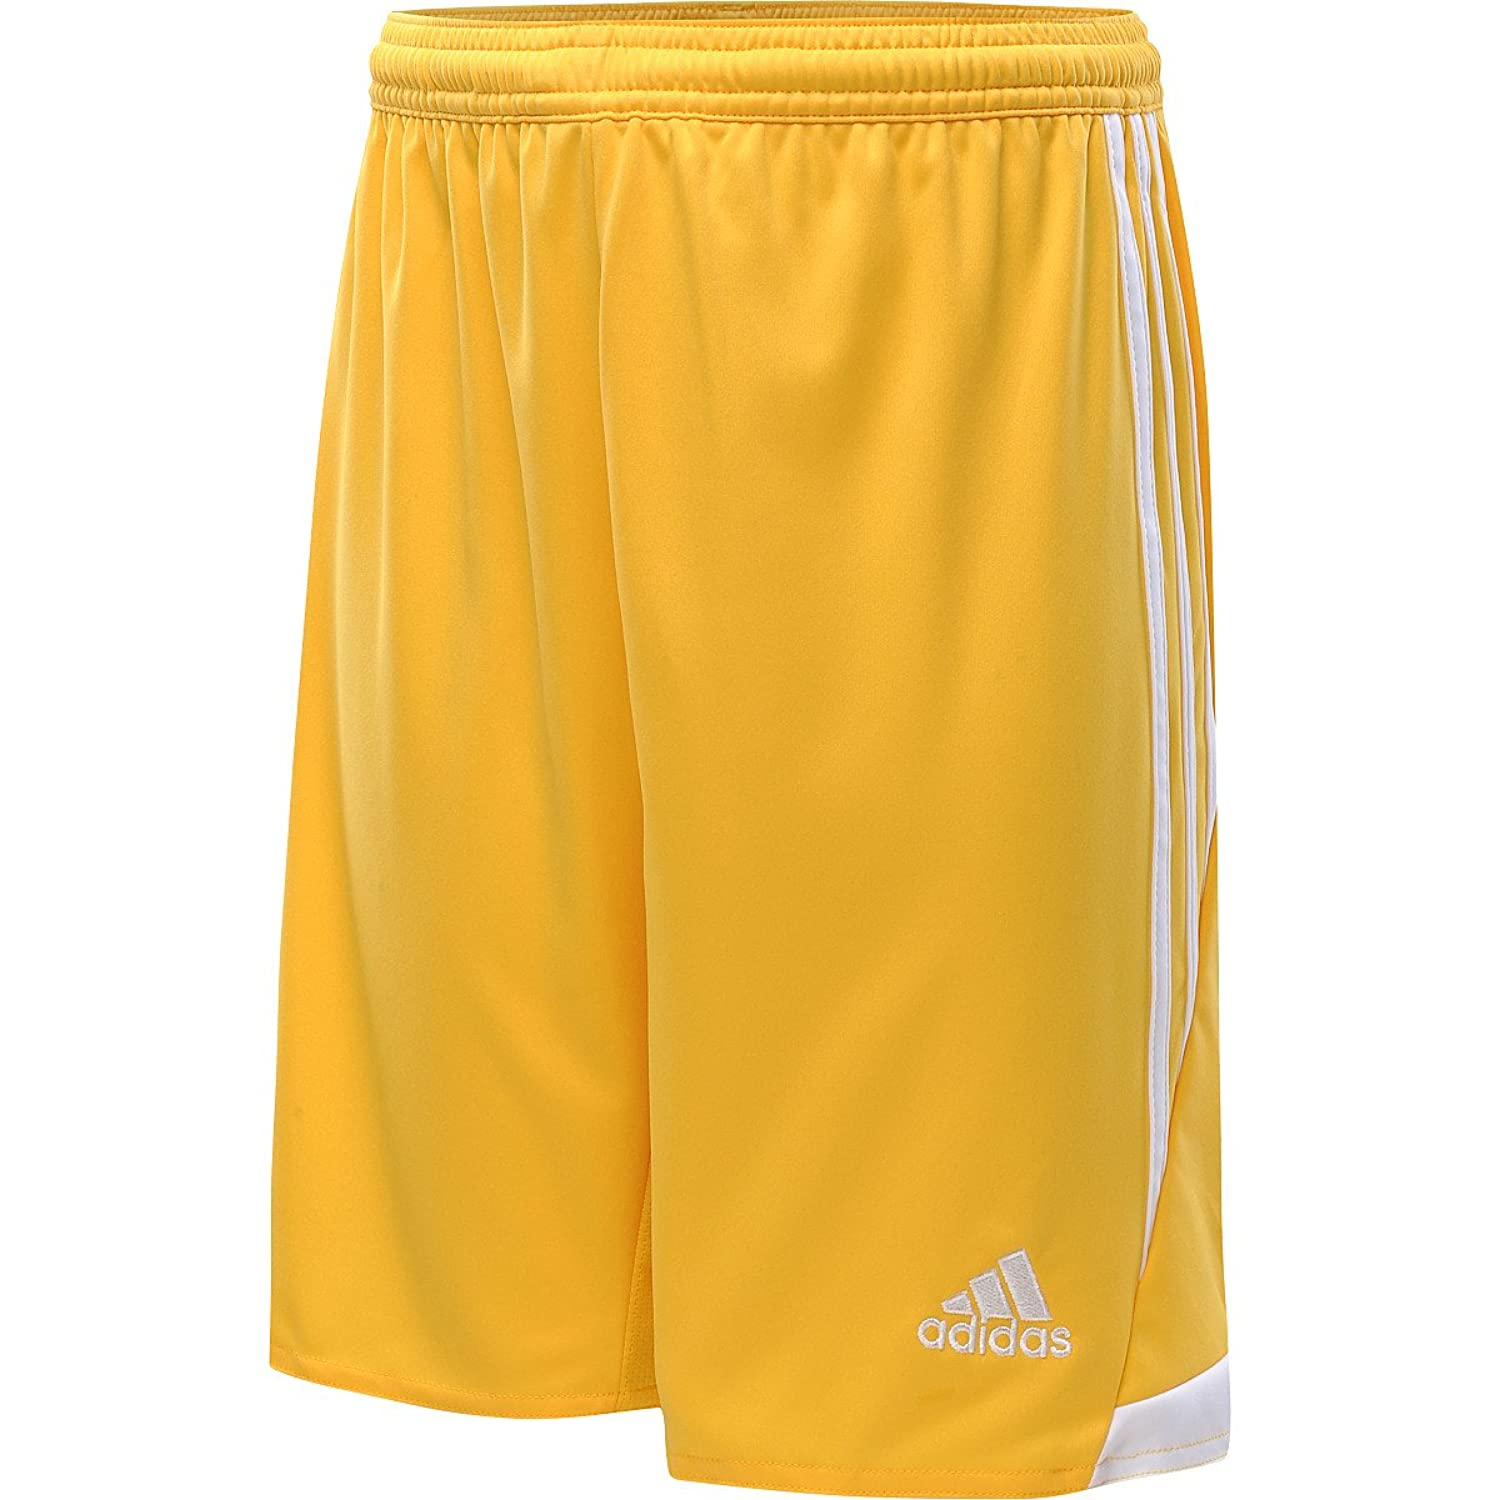 adidas Youth Tiro 13 Shorts Gold for sale